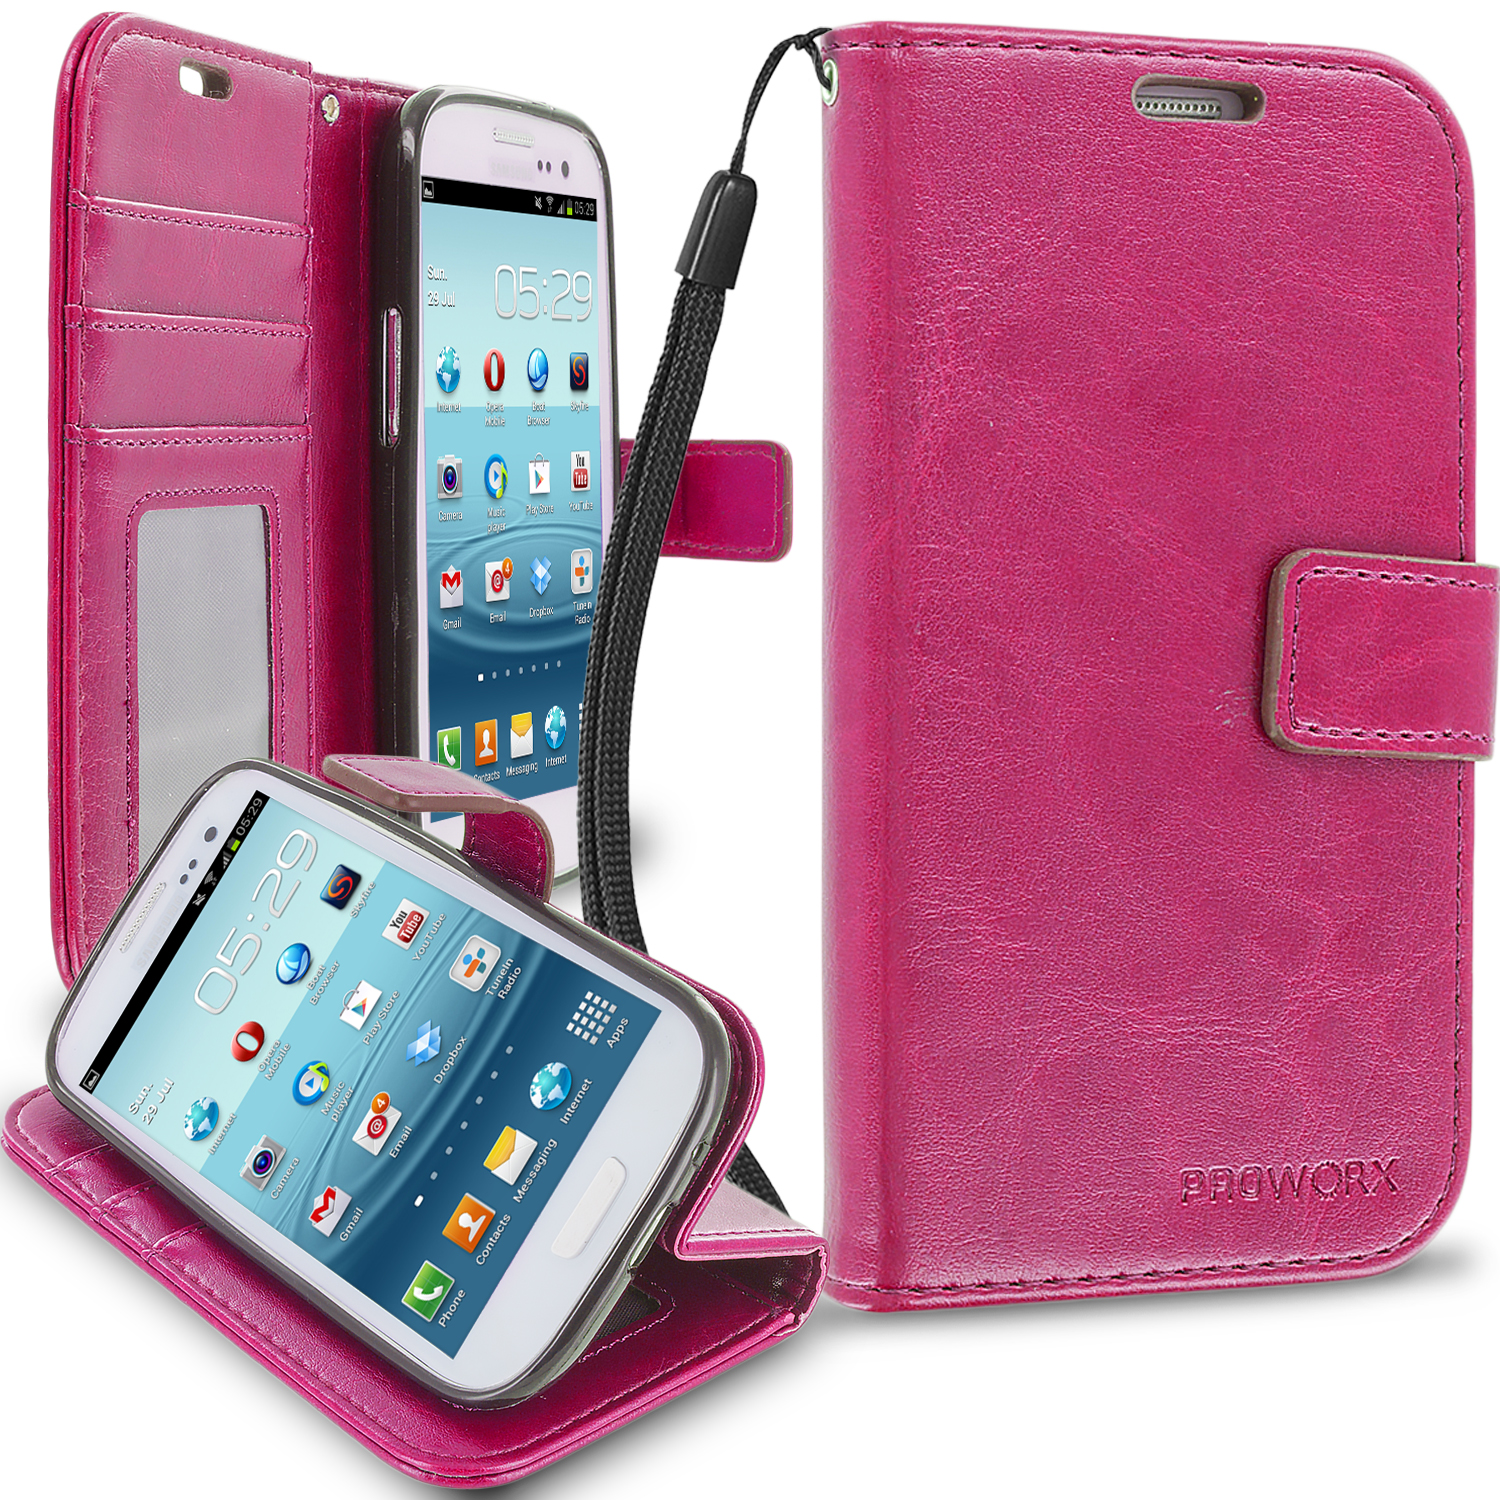 Samsung Galaxy S3 Hot Pink ProWorx Wallet Case Luxury PU Leather Case Cover With Card Slots & Stand